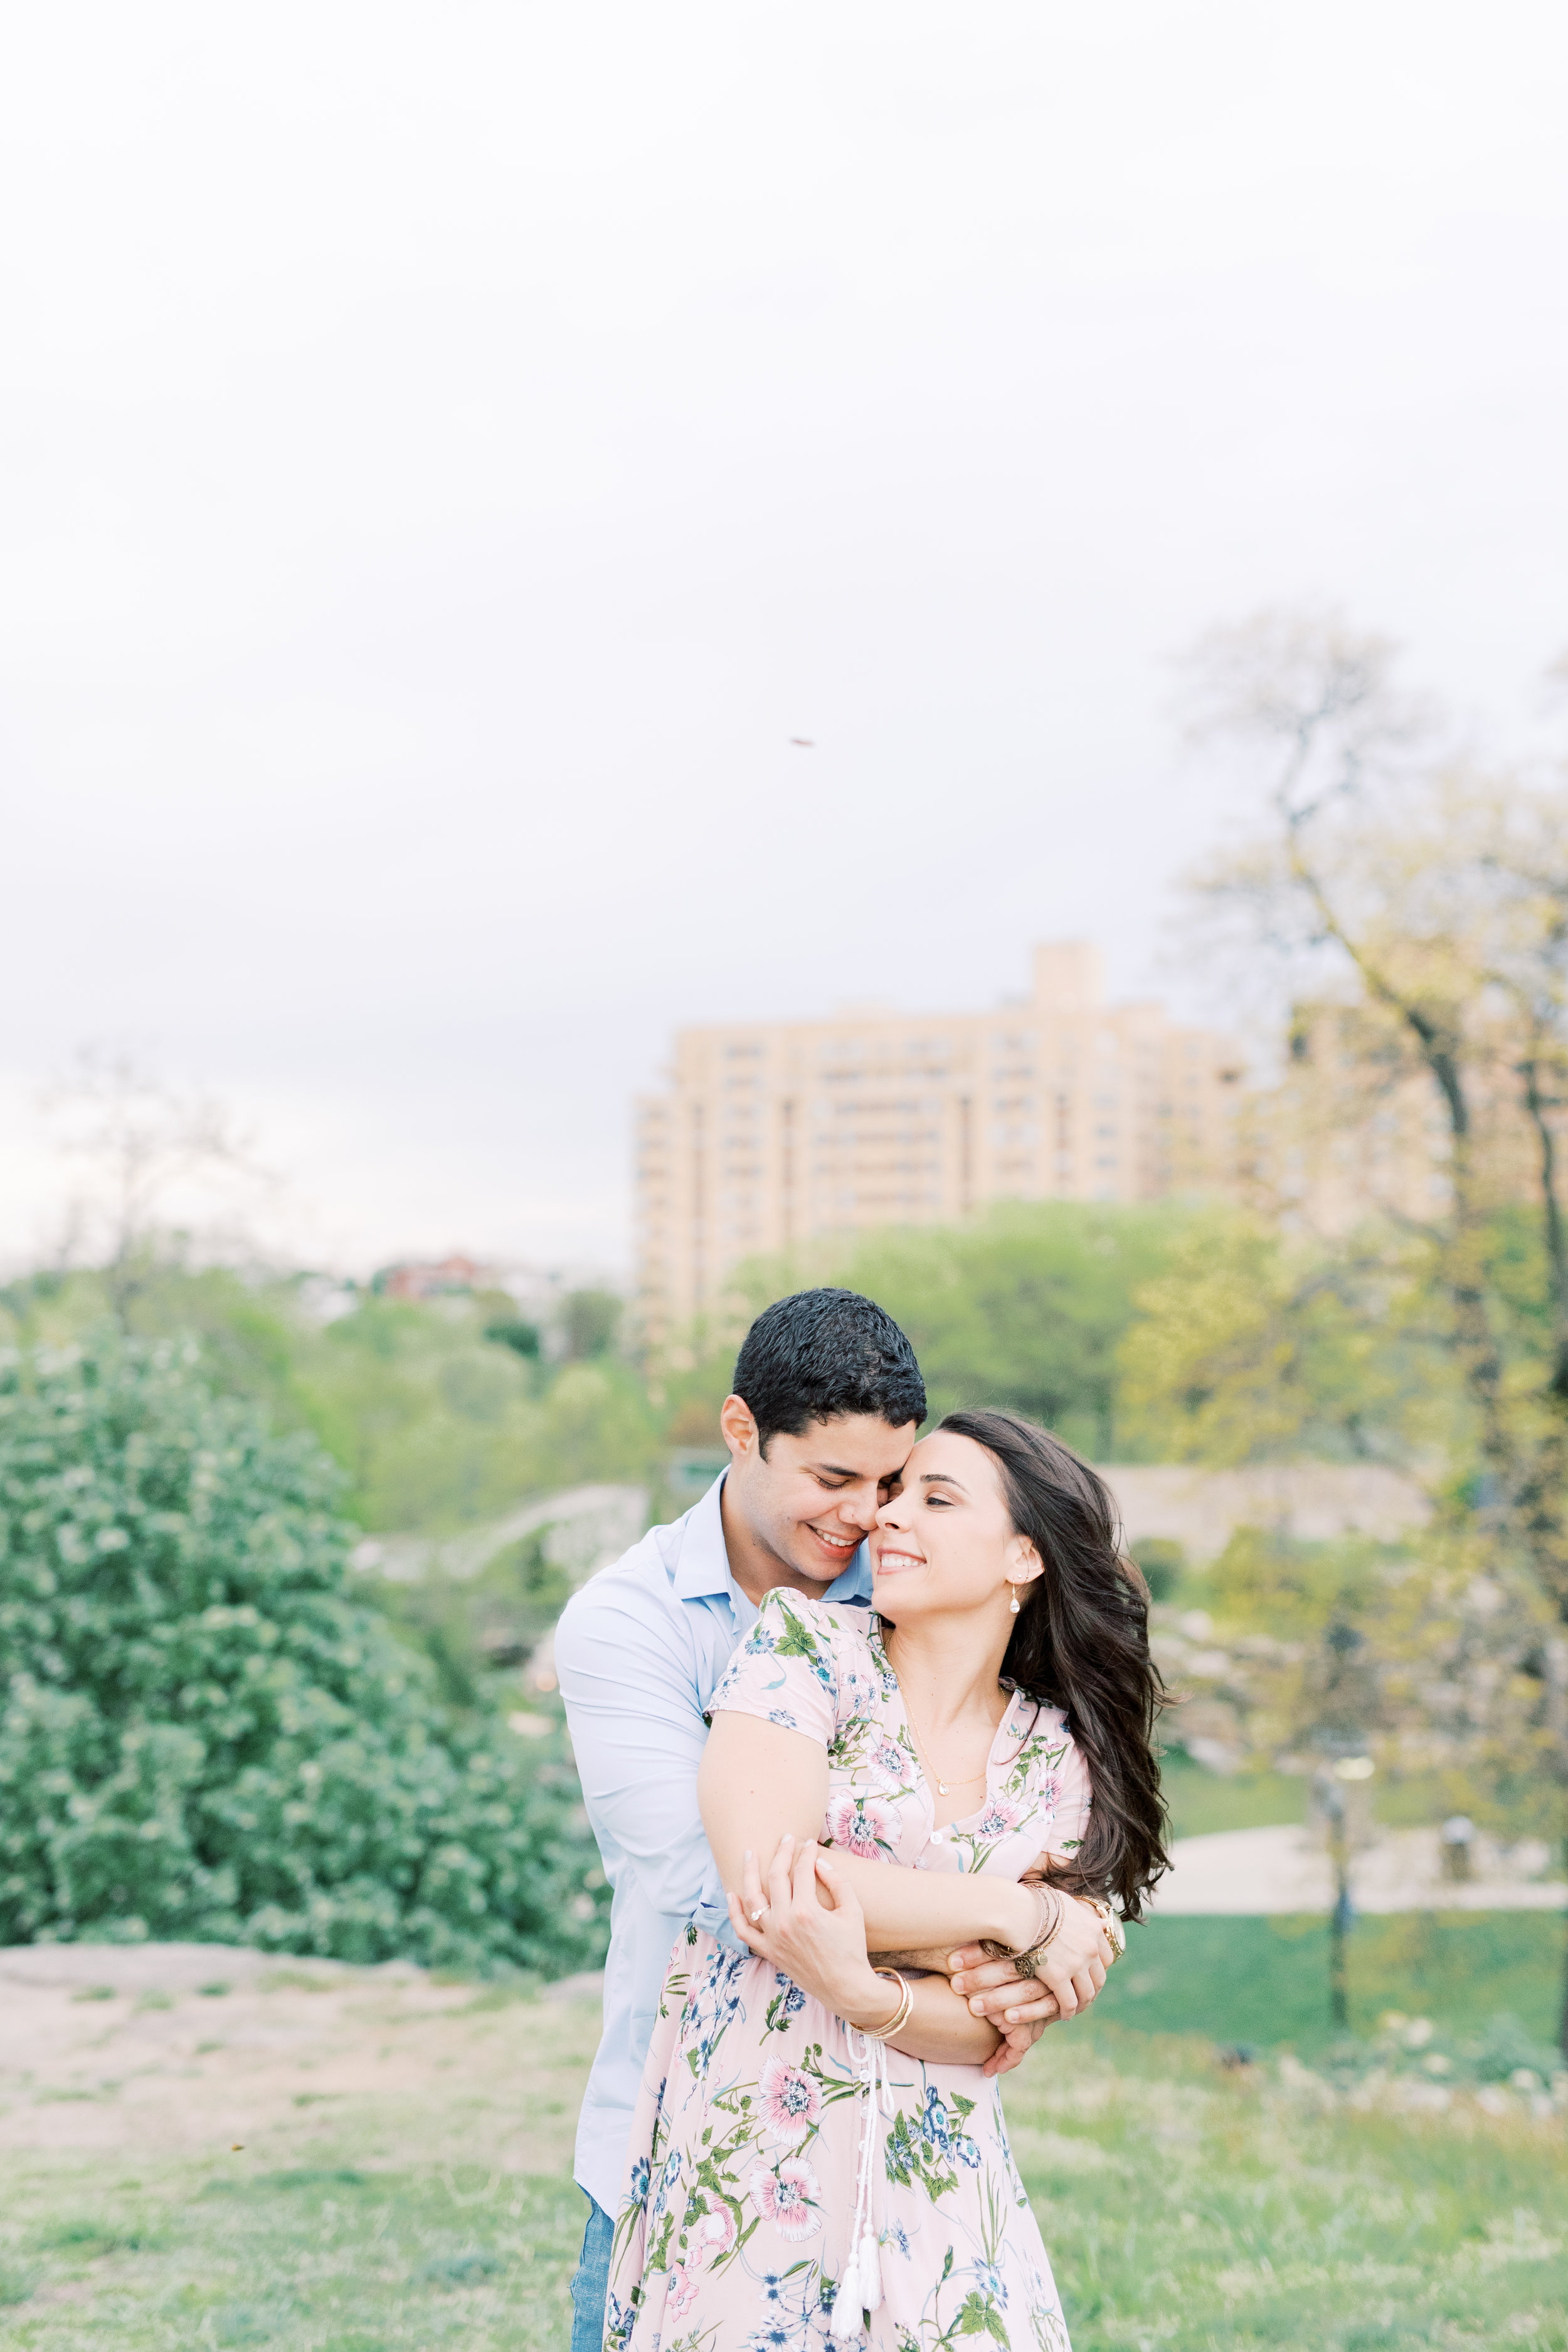 haley-richter-photography-spring-engagement-session-philadelphia-museum-of-art-flowers-picnic-60.jpg